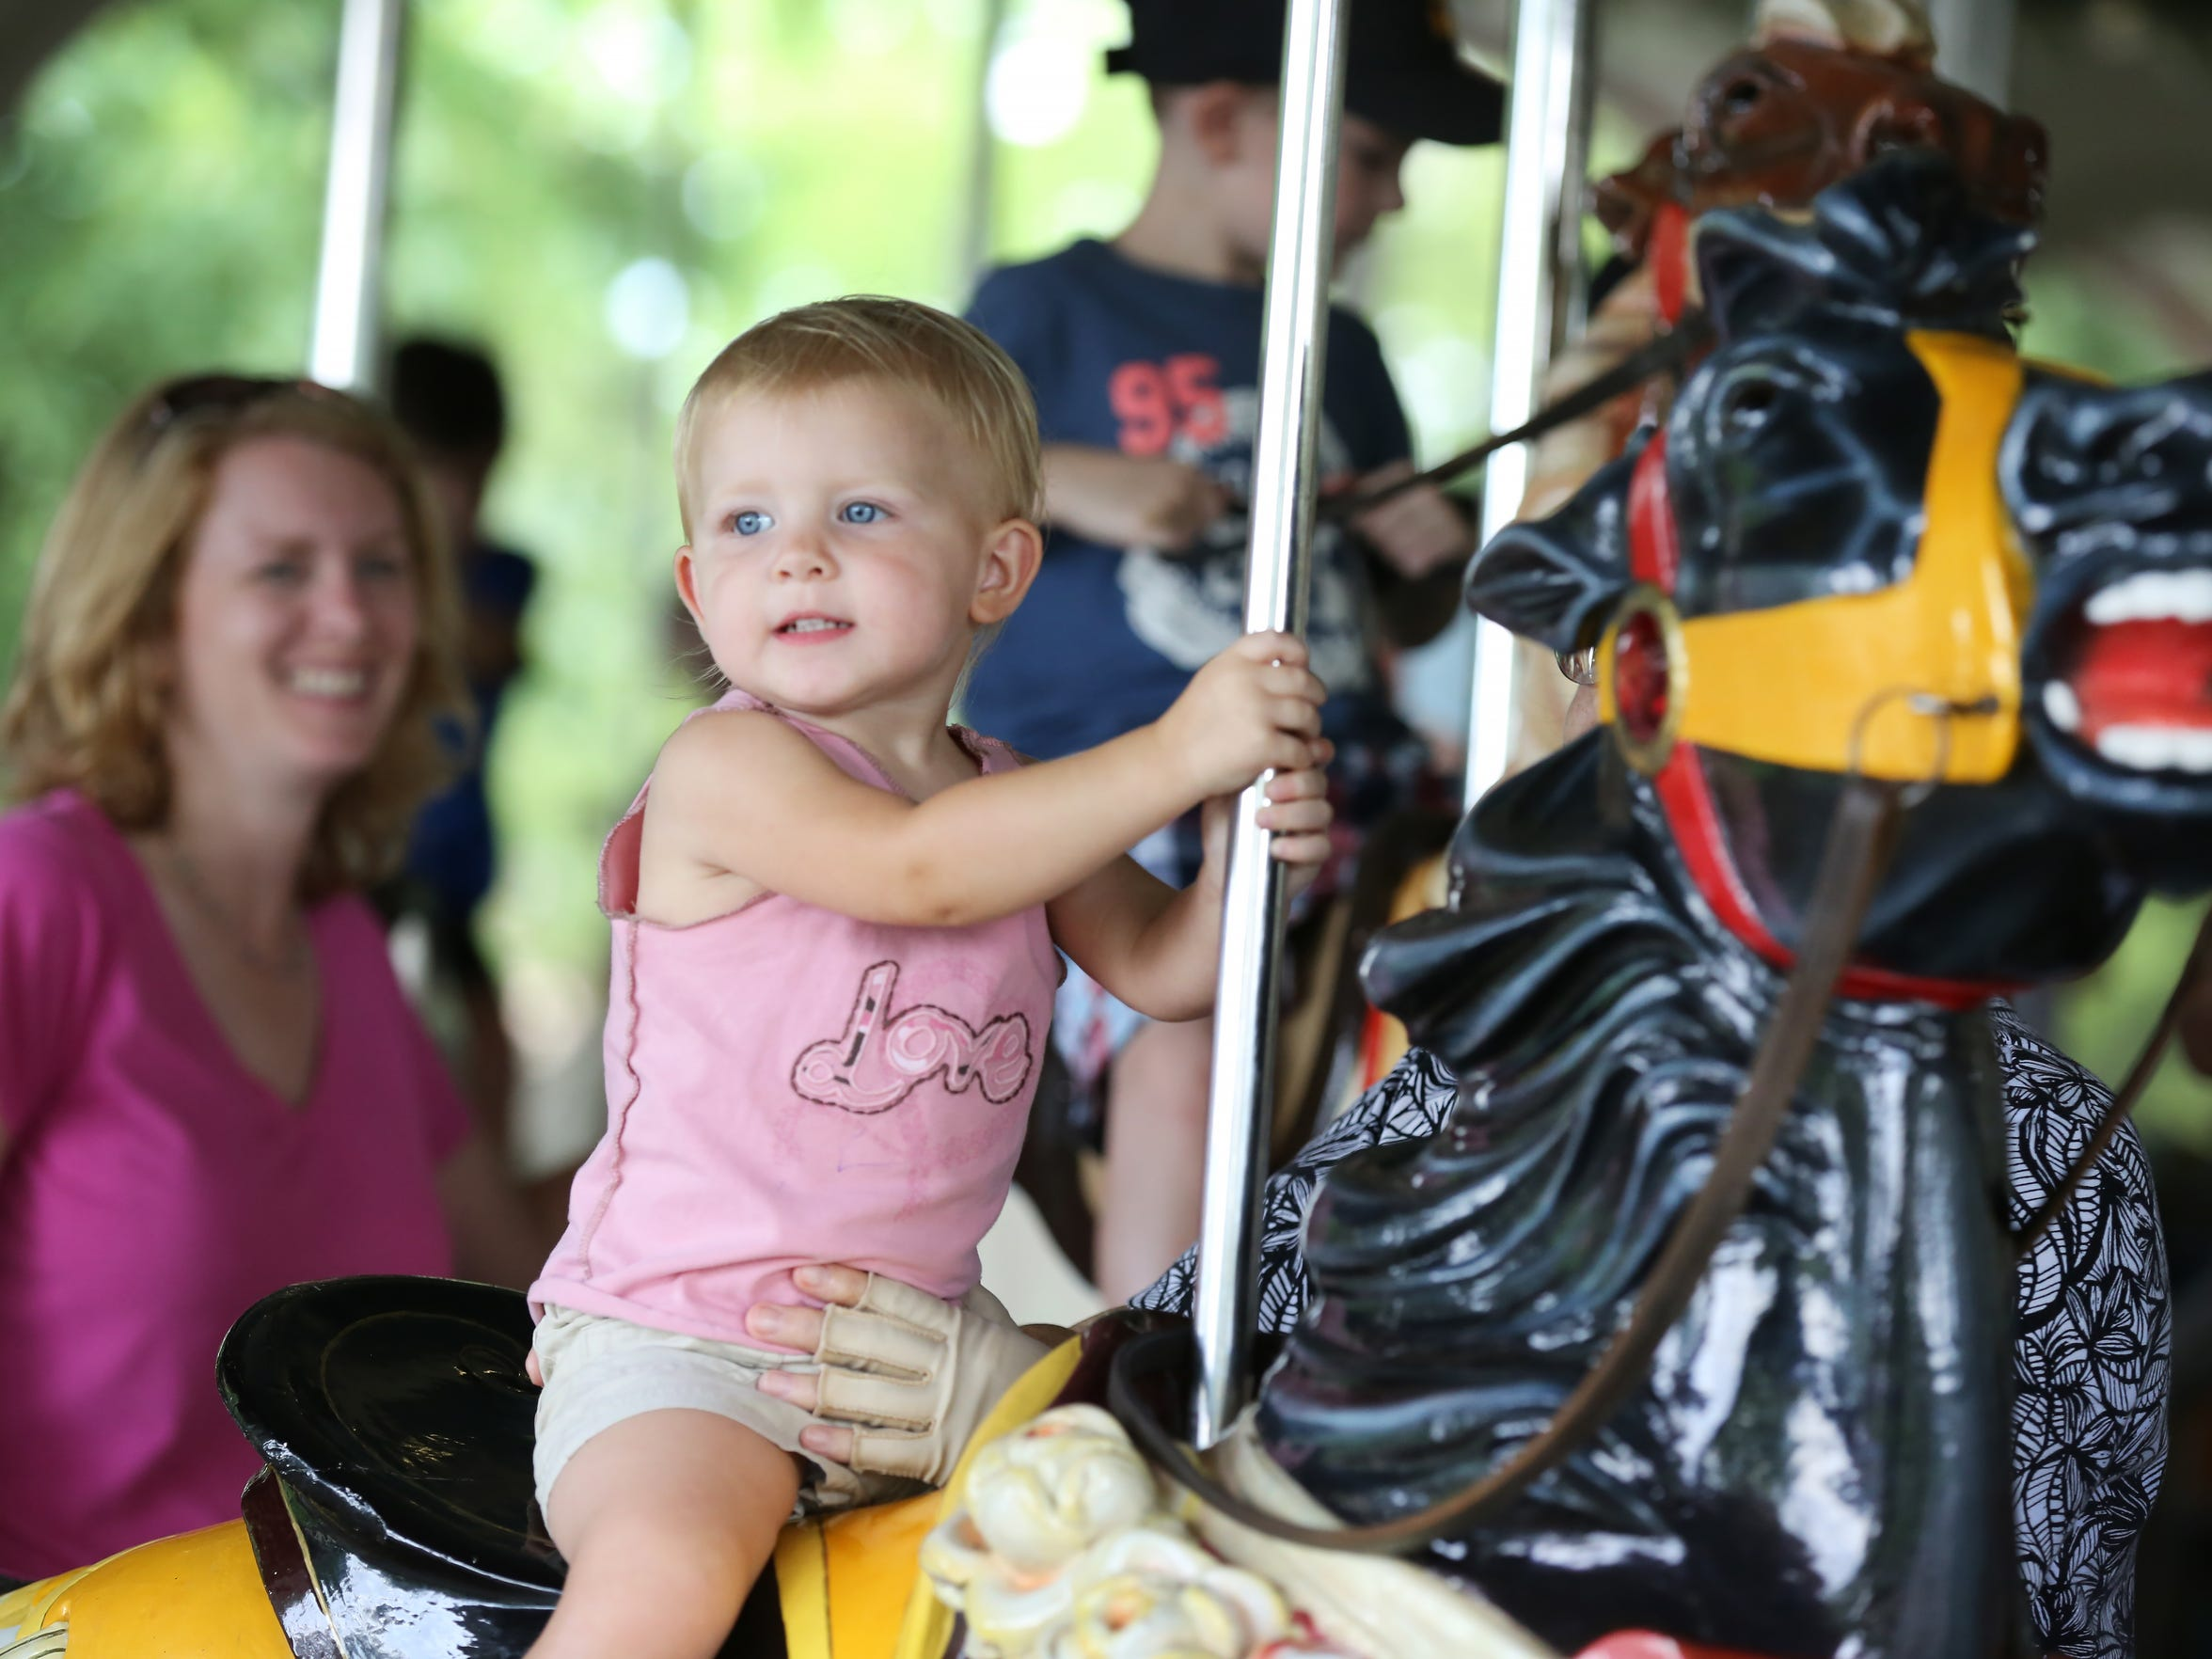 Ashtyn Stanley, 2, along with her mom, Terra, ride